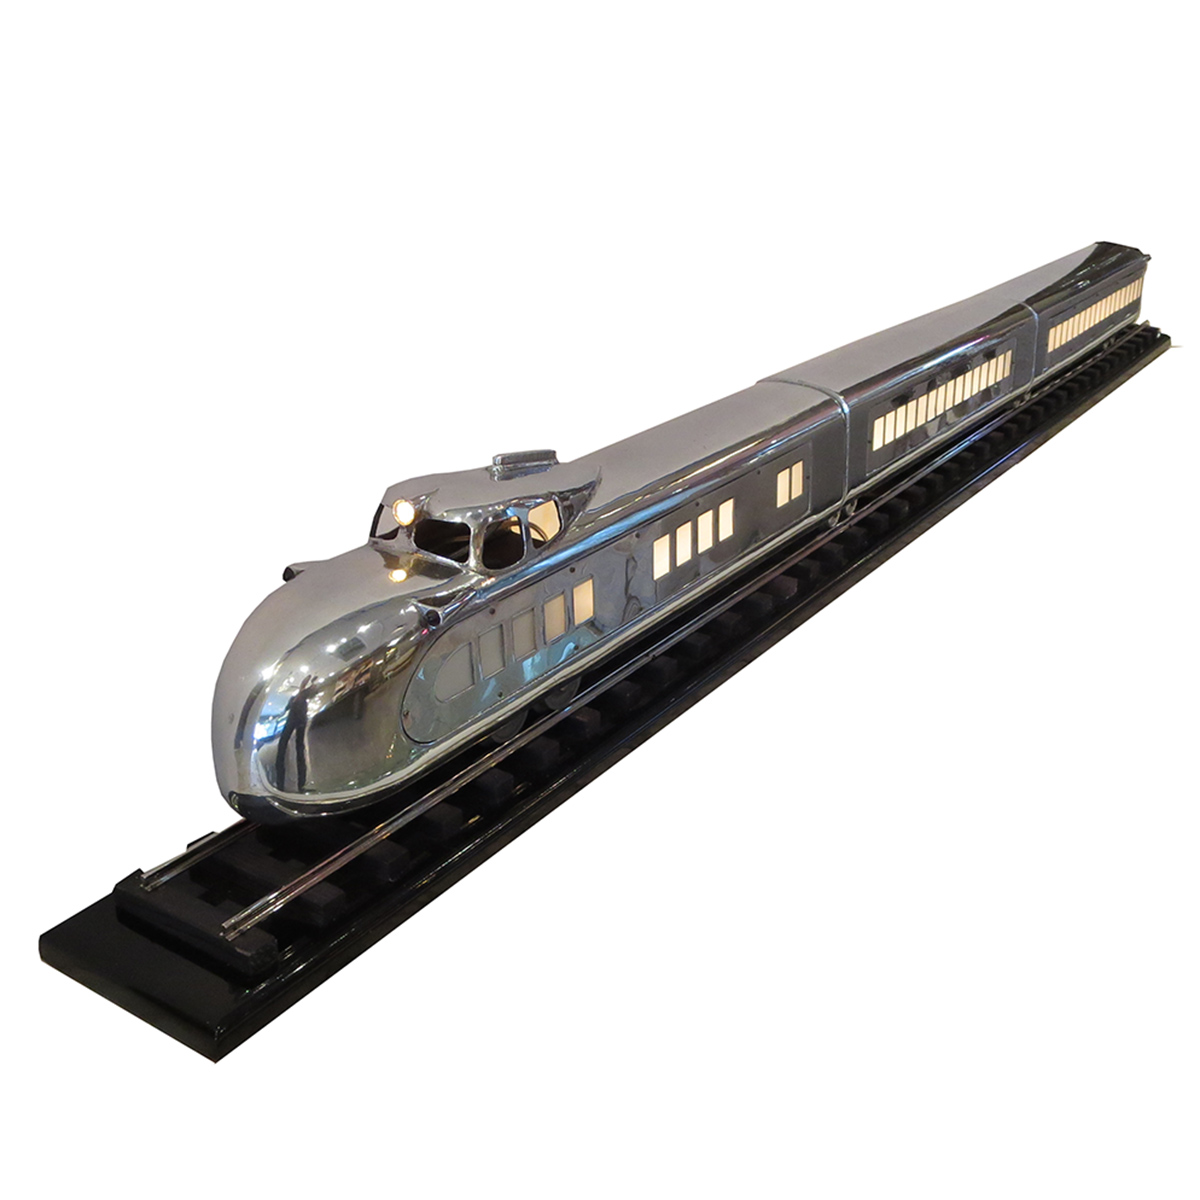 Art Deco Möbel Shop 6 Ft Art Deco Train General Streamline Model Off The Wall